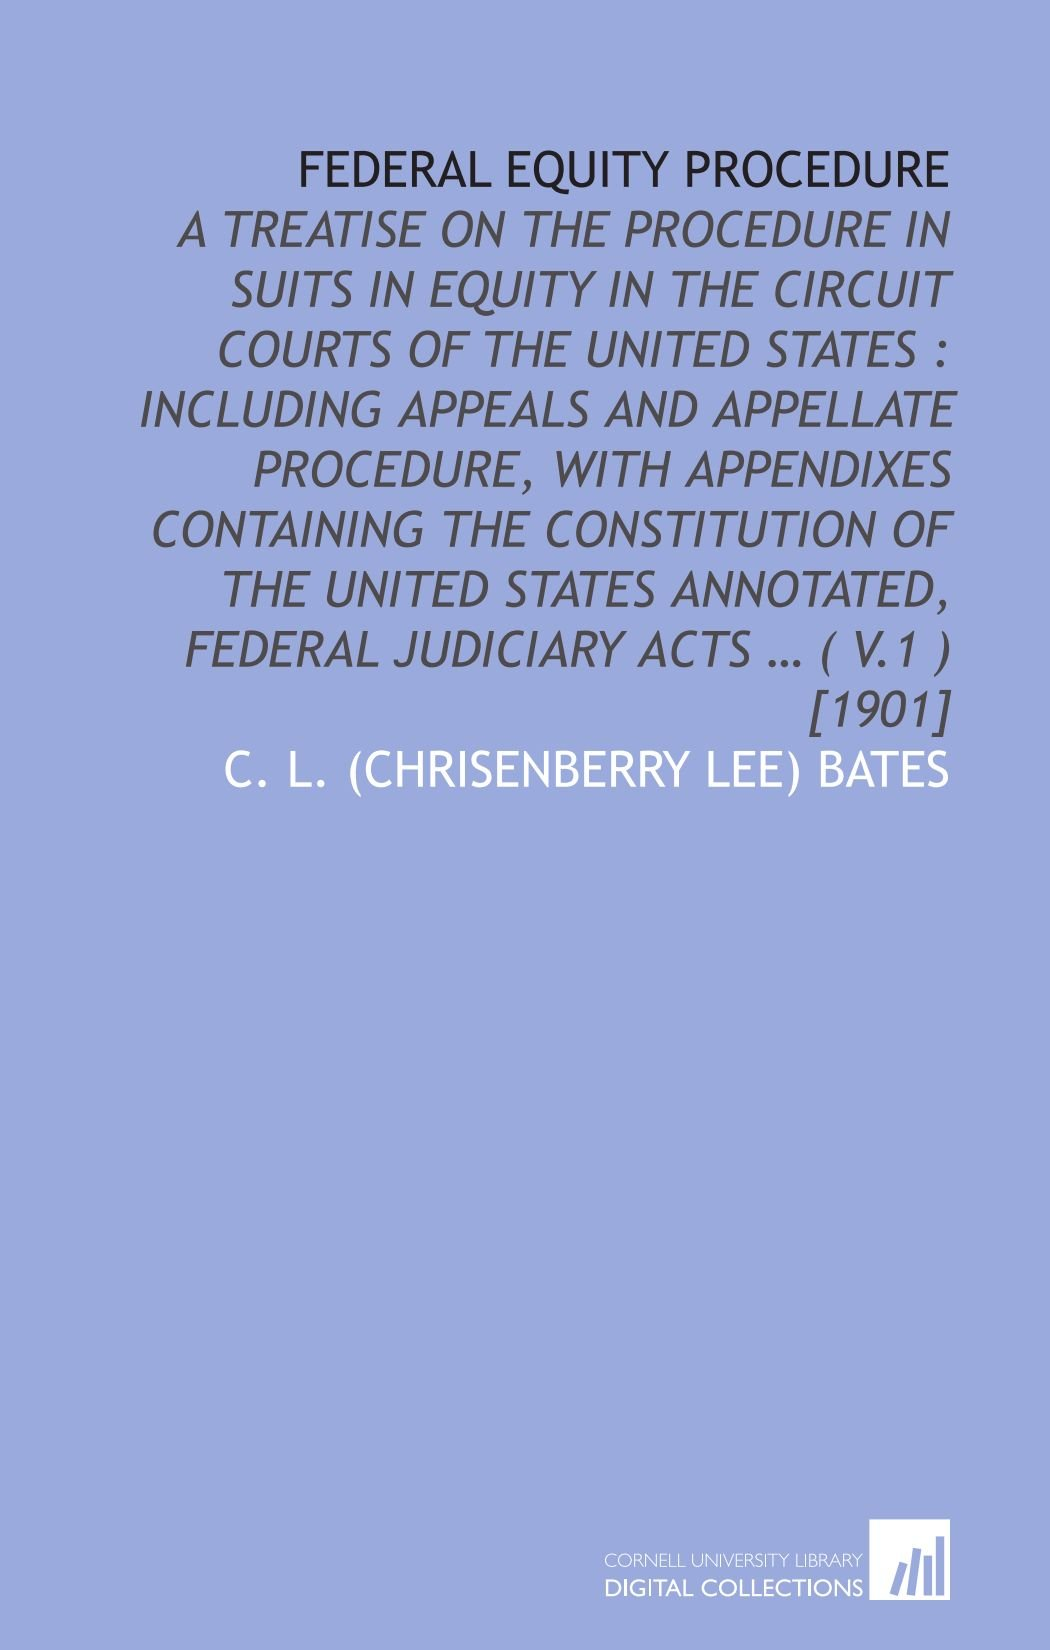 Download Federal equity procedure: a treatise on the procedure in suits in equity in the circuit courts of the United States : including appeals and appellate ... federal judiciary acts … ( v.1 ) [1901] ebook